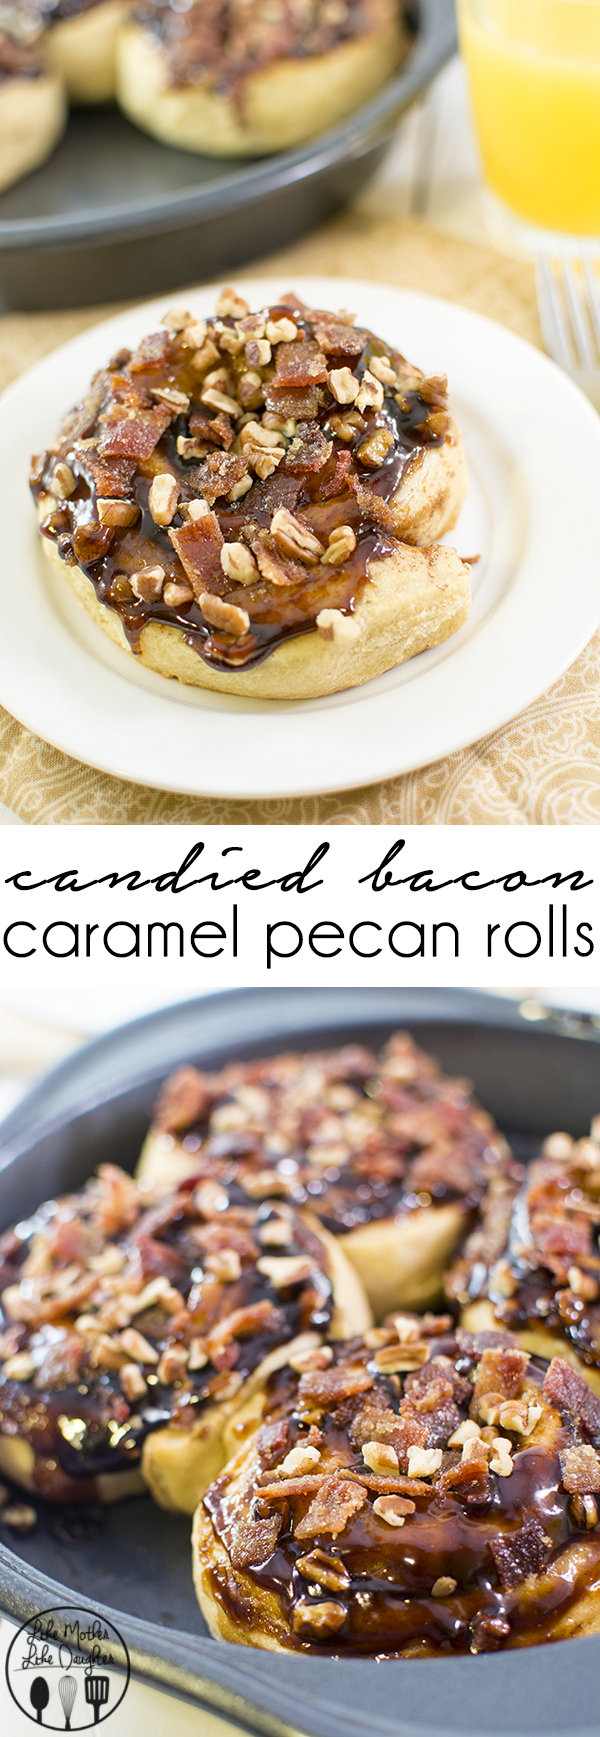 Candied Bacon Caramel Pecan Rolls - a delicious breakfast option for that sweet and salty taste.